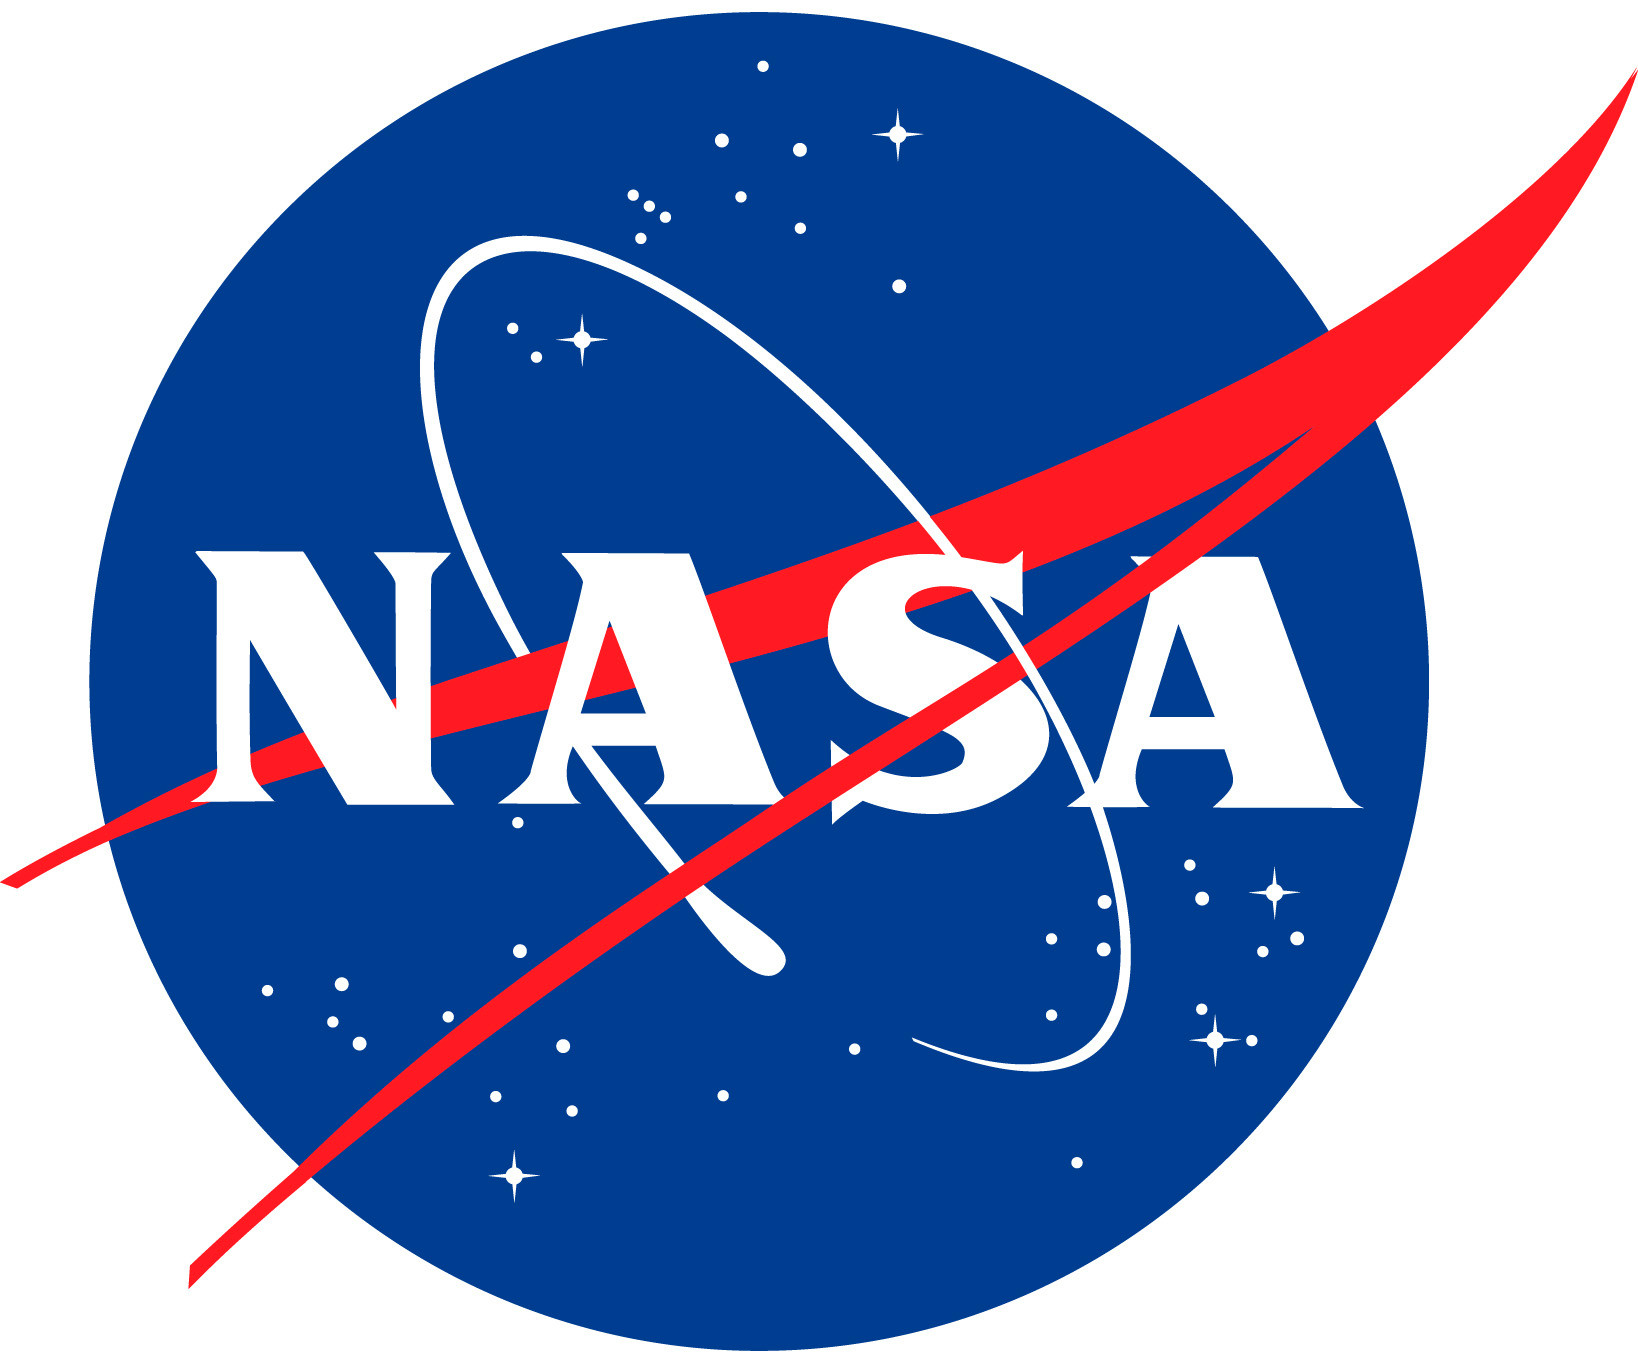 http://cgreport.files.wordpress.com/2009/05/nasa-logo.jpg